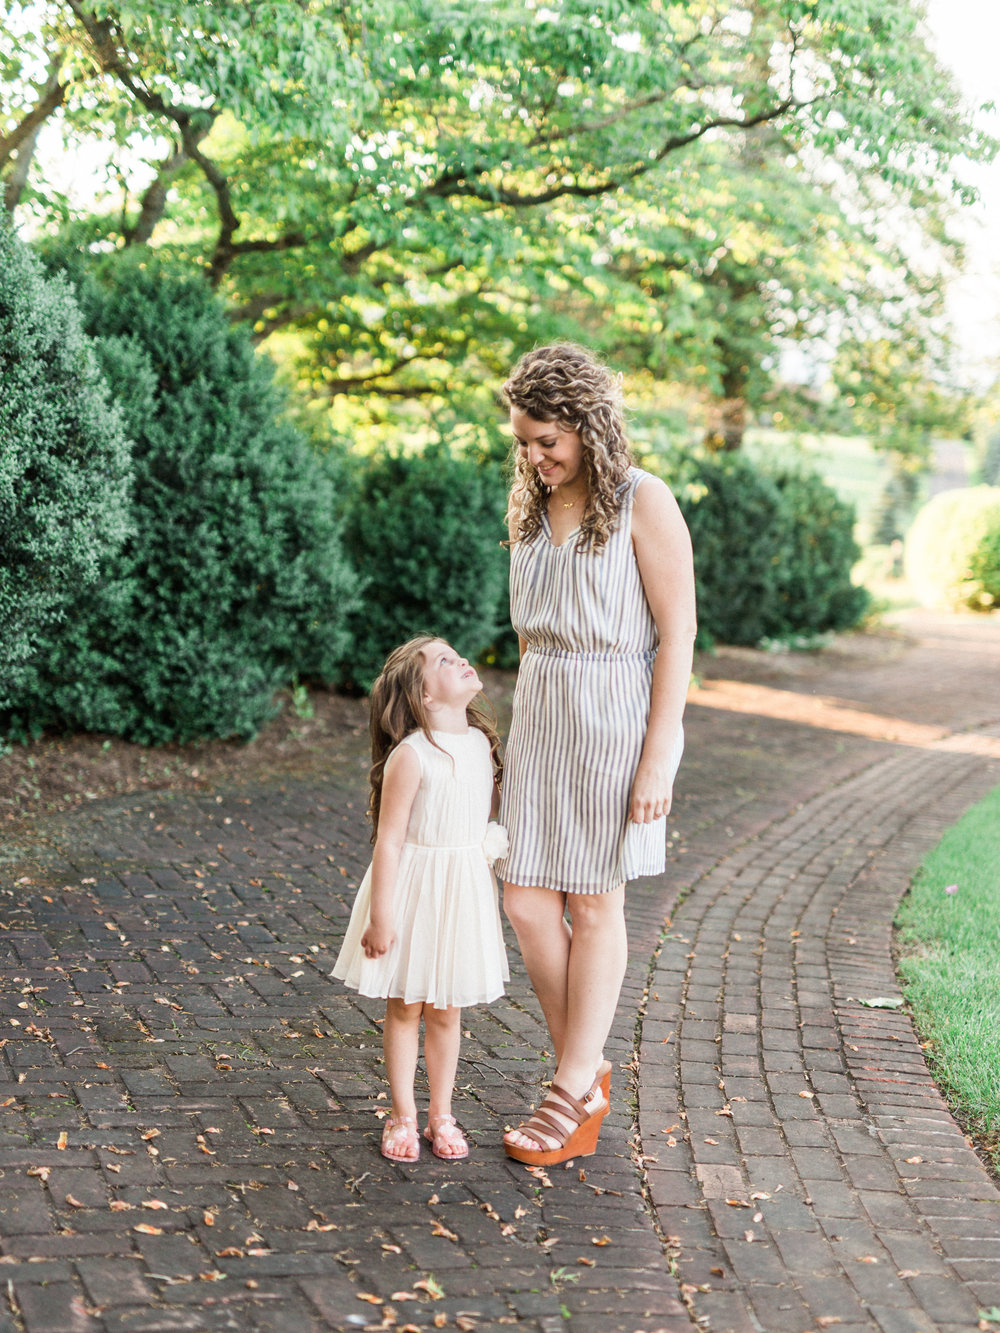 Little moments matter in motherhood || mom boss || Charlottesville Wedding Photographer || www.ashleyeiban.com